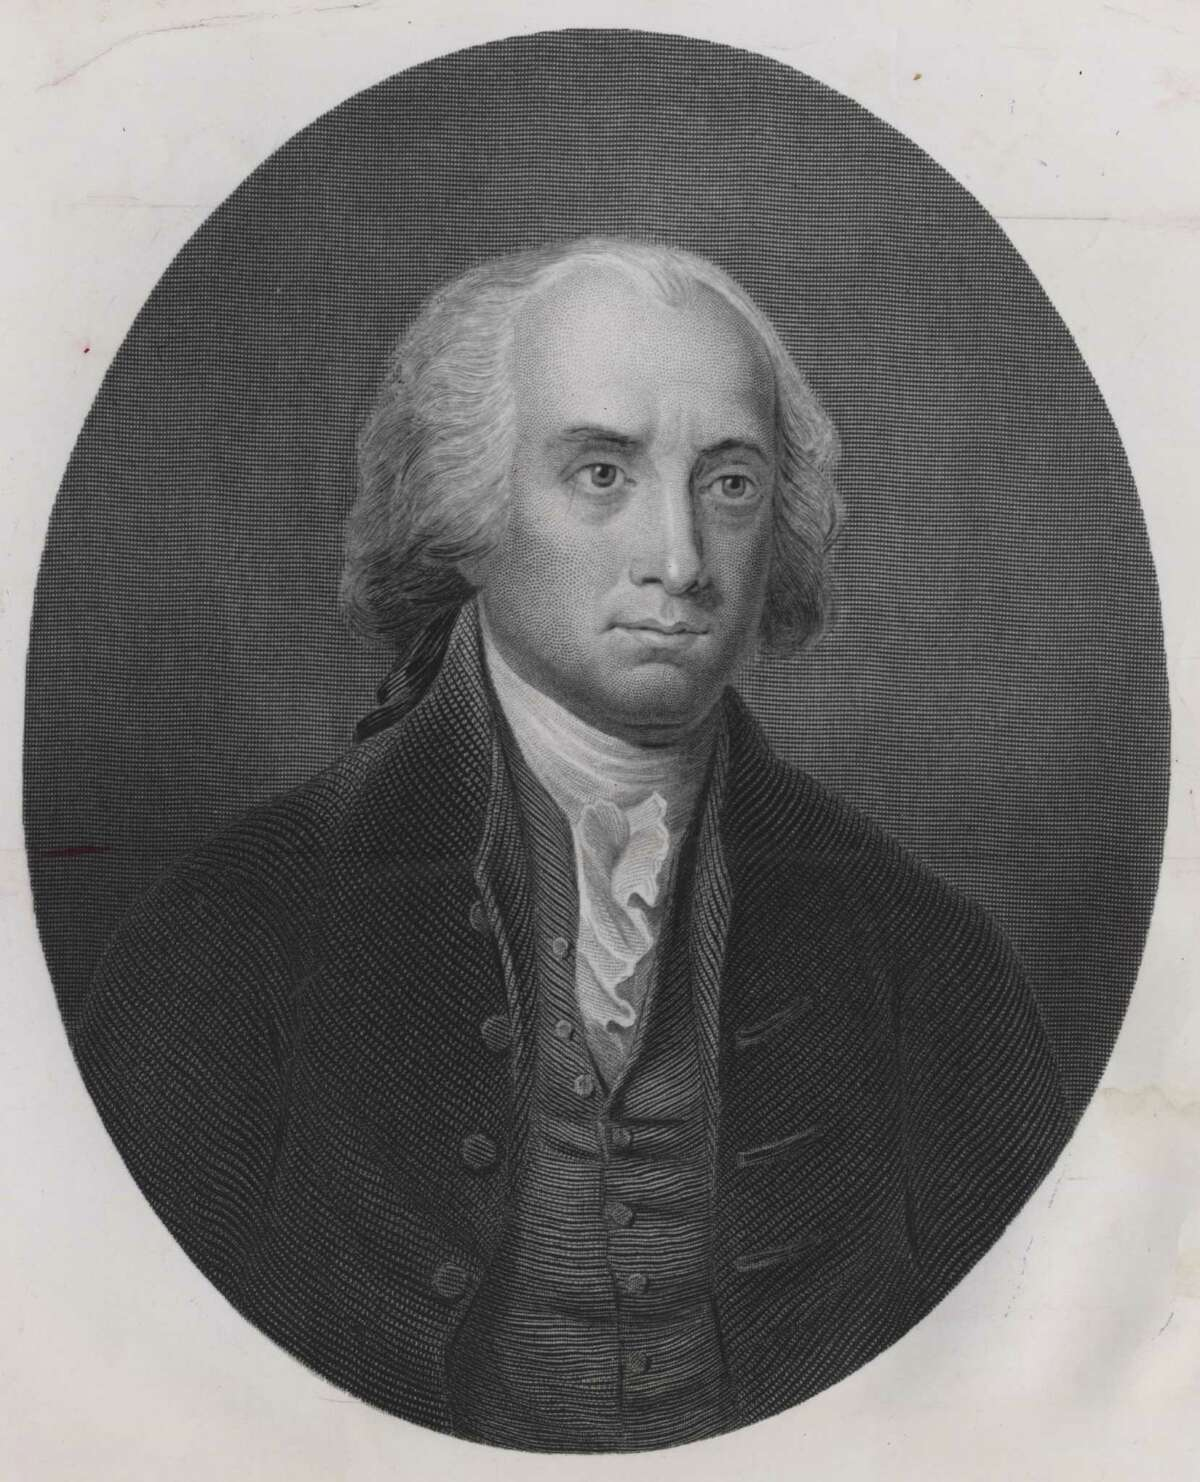 Pushing for changes James Madison, one of the Founding Fathers and the fourth president of the United States, is credited by historians with creating the amendment process.